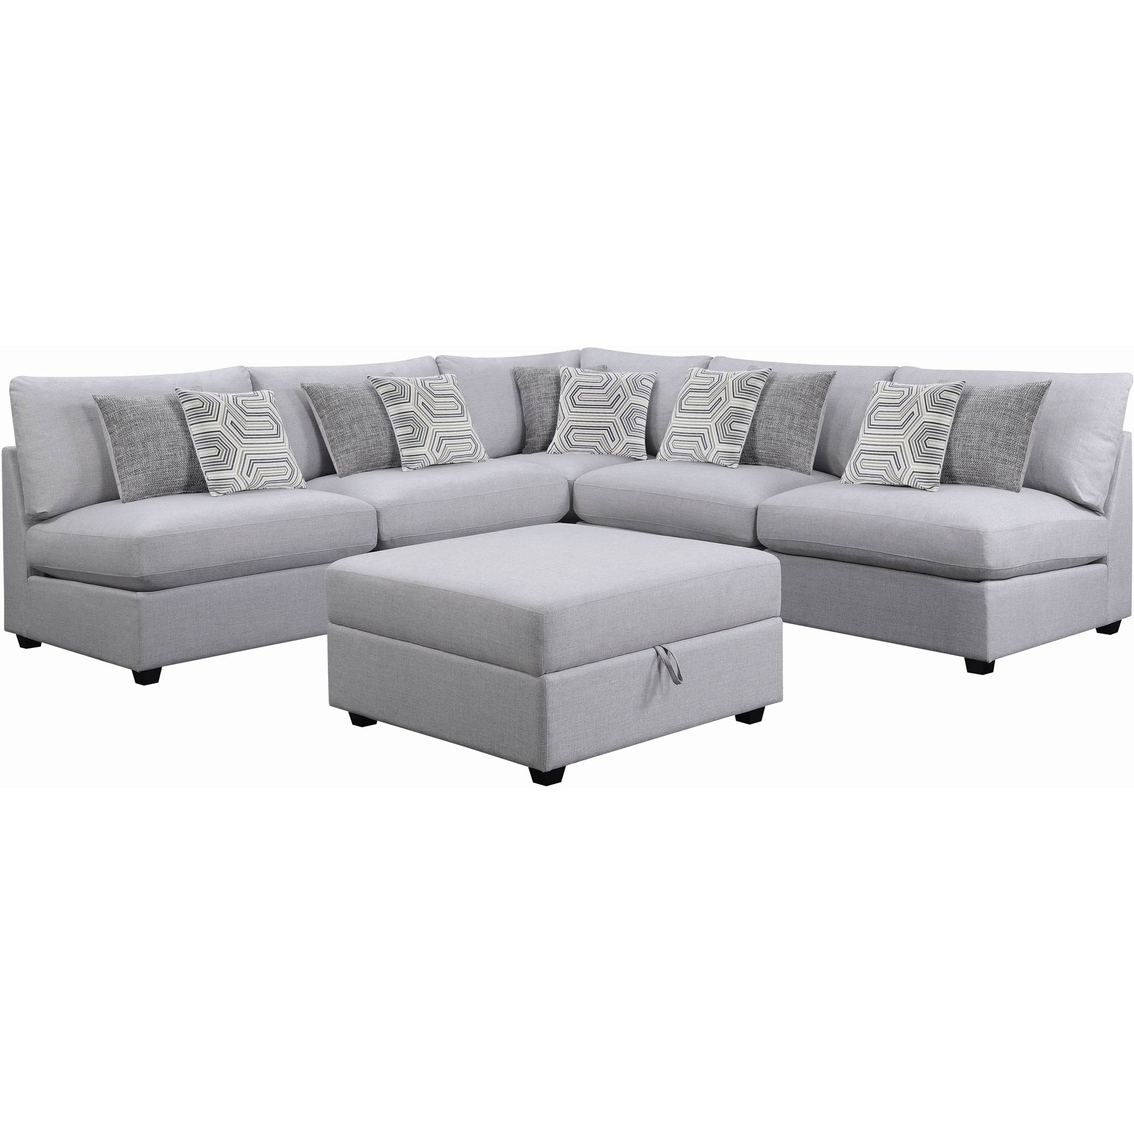 Scott living charlotte 5 pc. modern sectional with 4 armless chairs